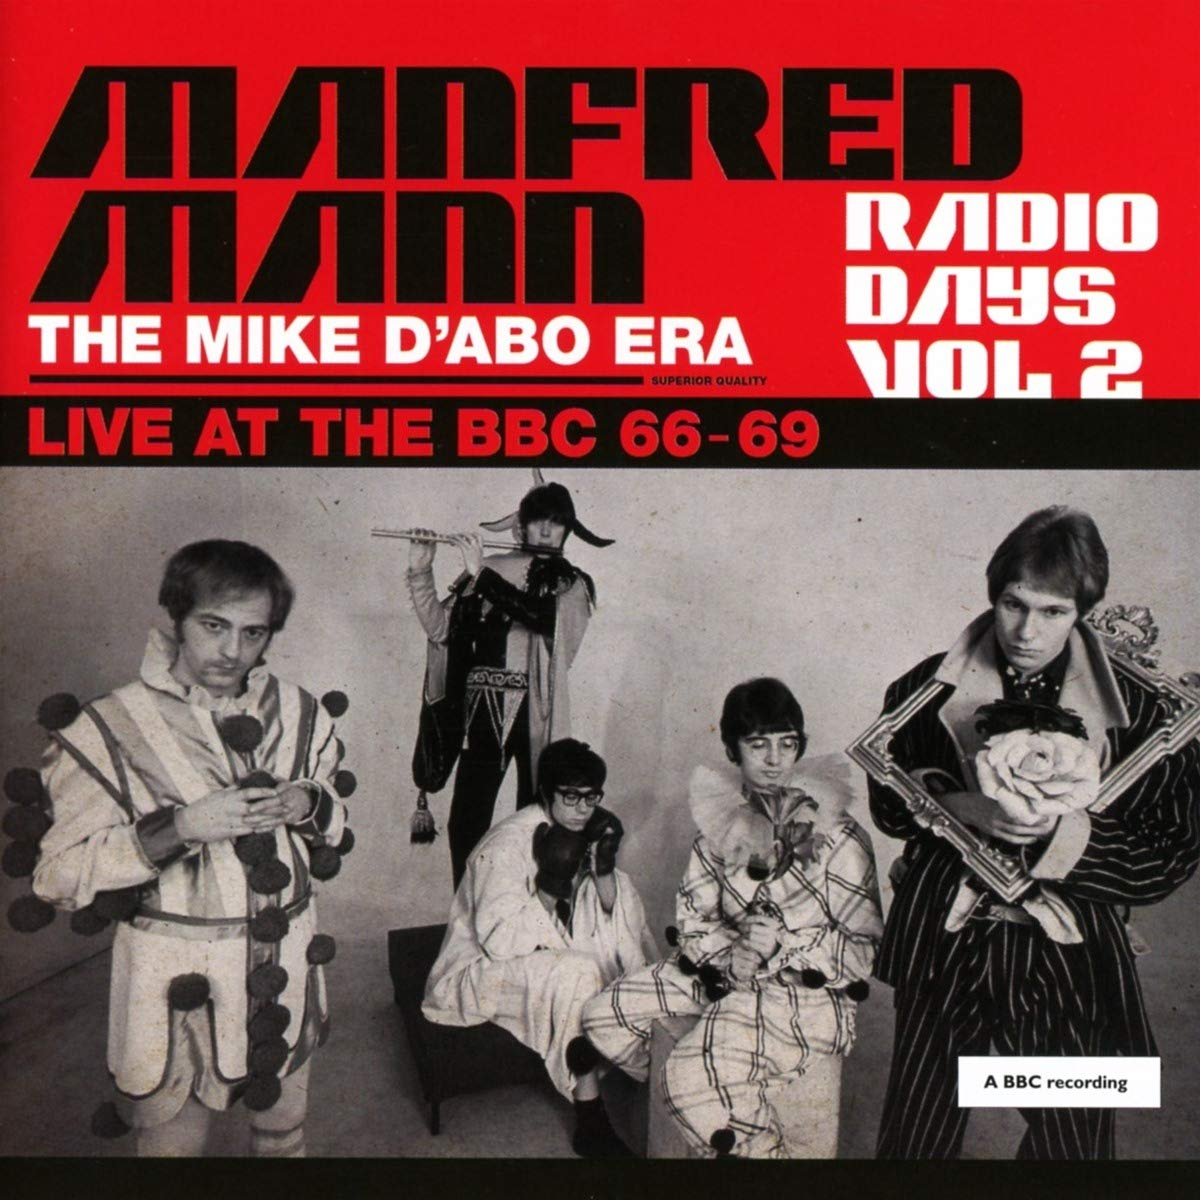 Manfred Mann Radio Days Vol 2 (The Mike D\'abo Era)